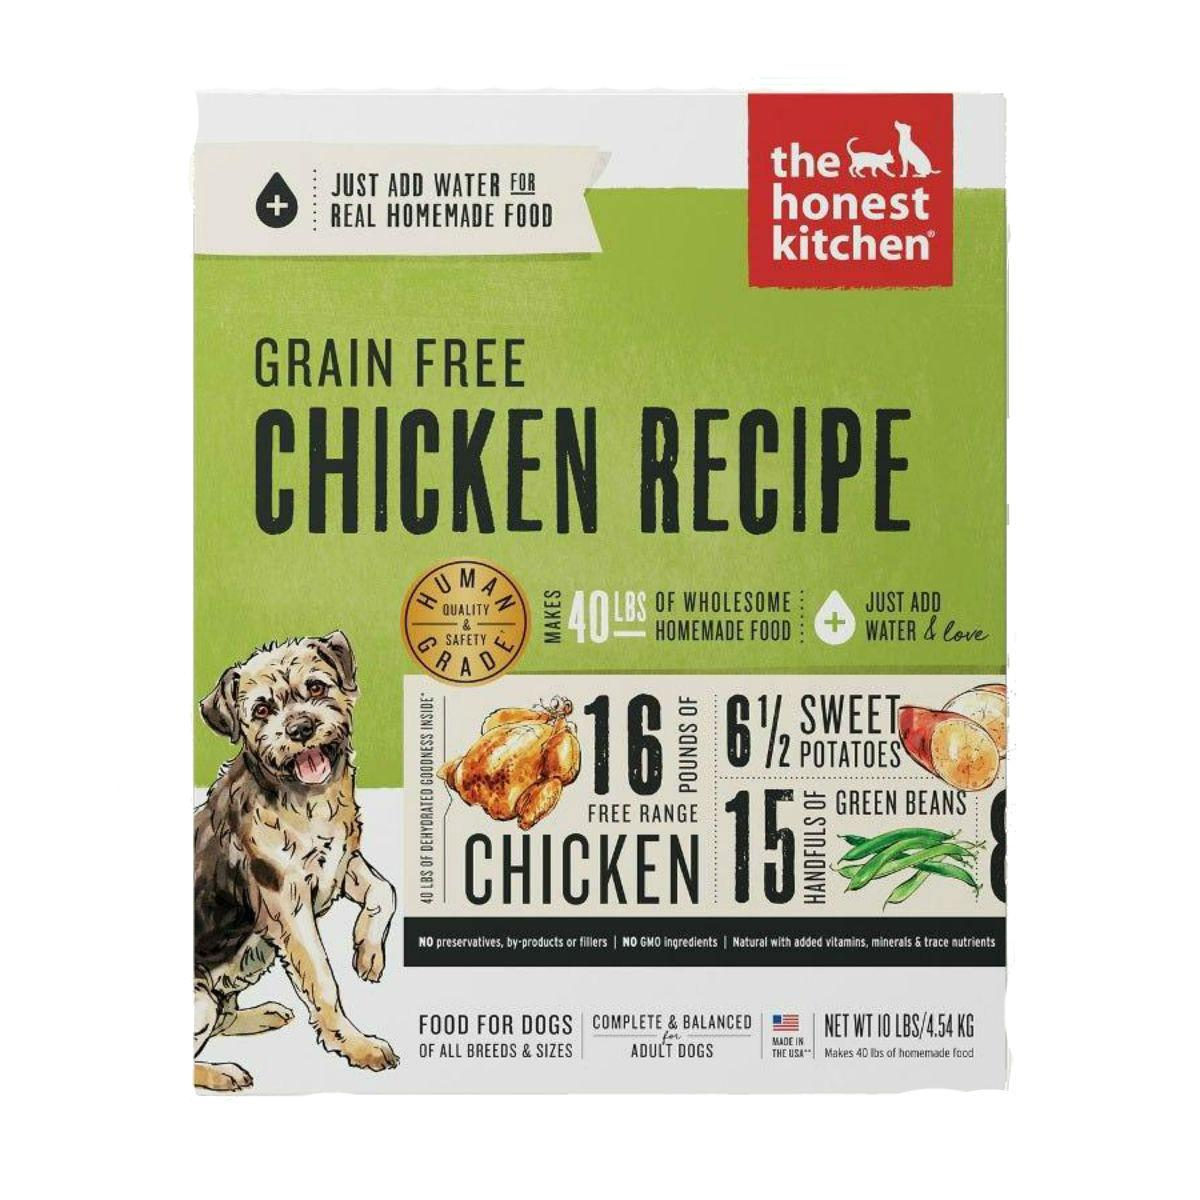 The Honest Kitchen Force Grain-Free Dehydrated Dog Food - Chicken